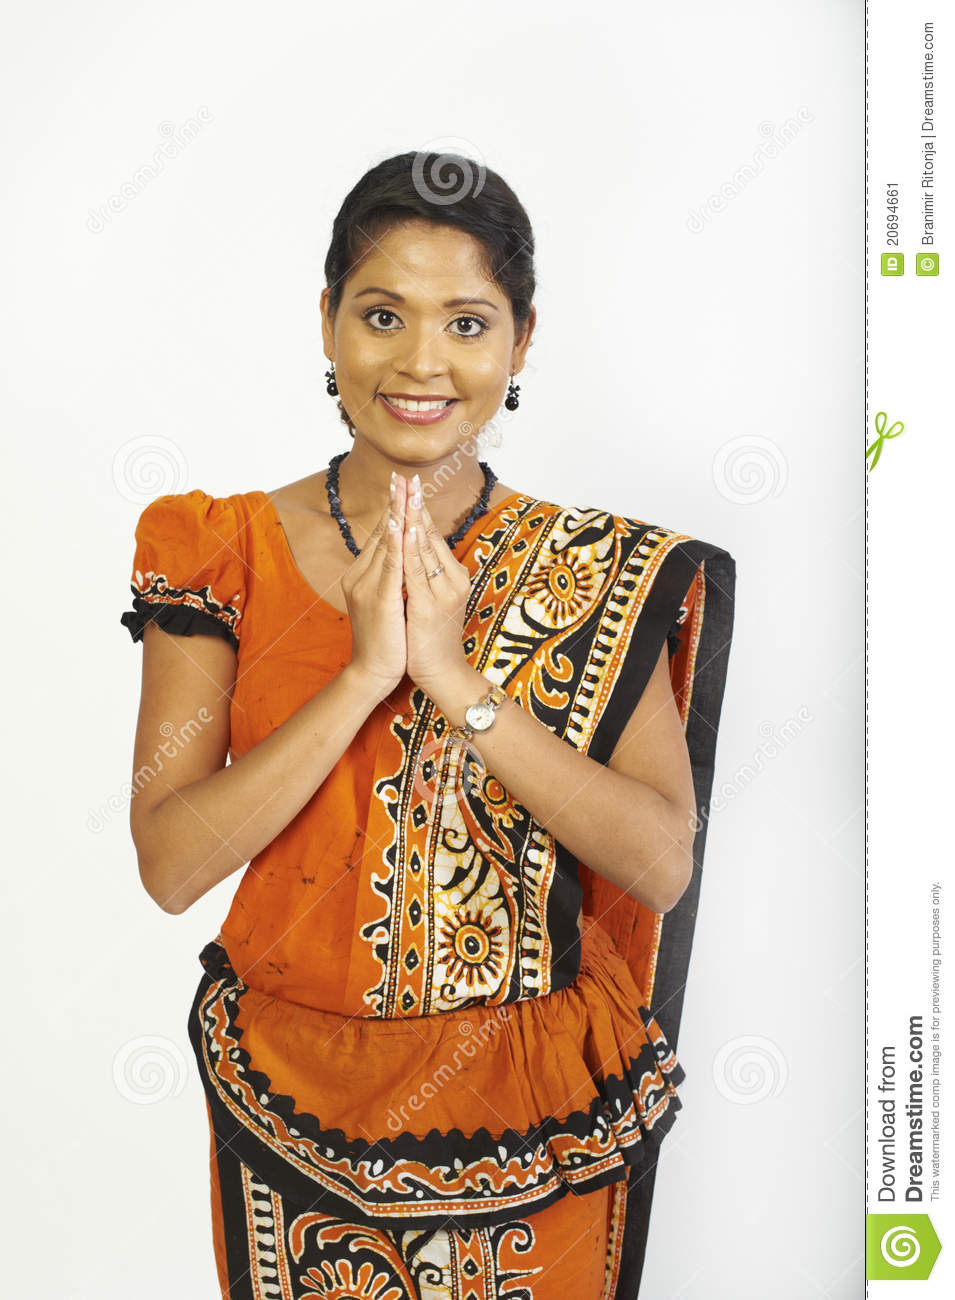 Sri lankan womens contact numbers